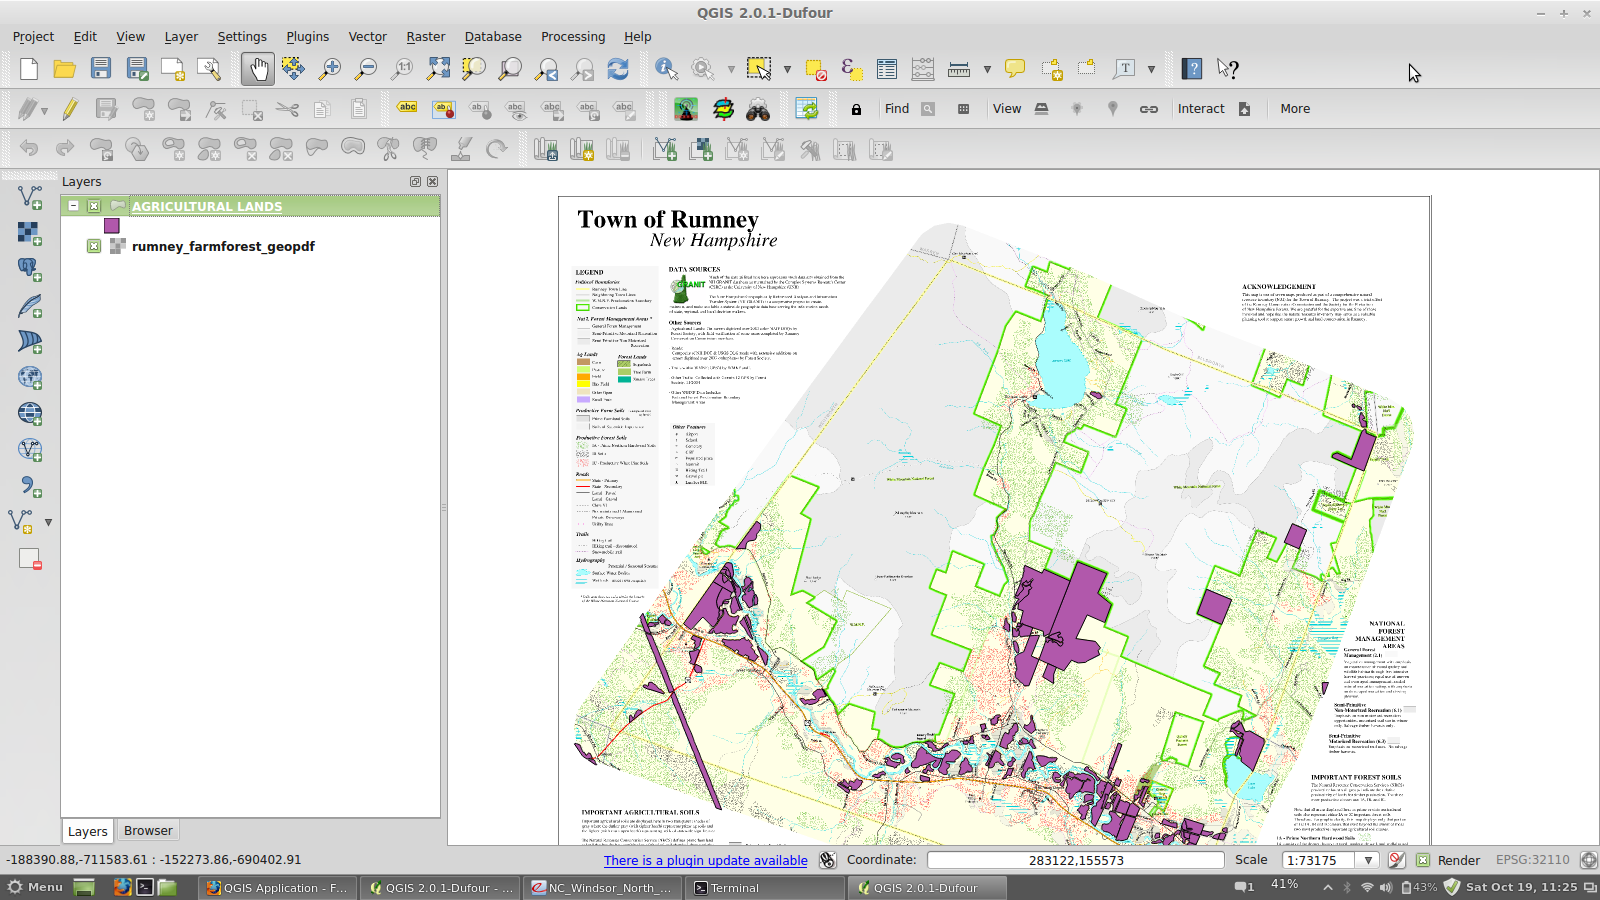 Feature request #8912: Better support for georeferenced pdf